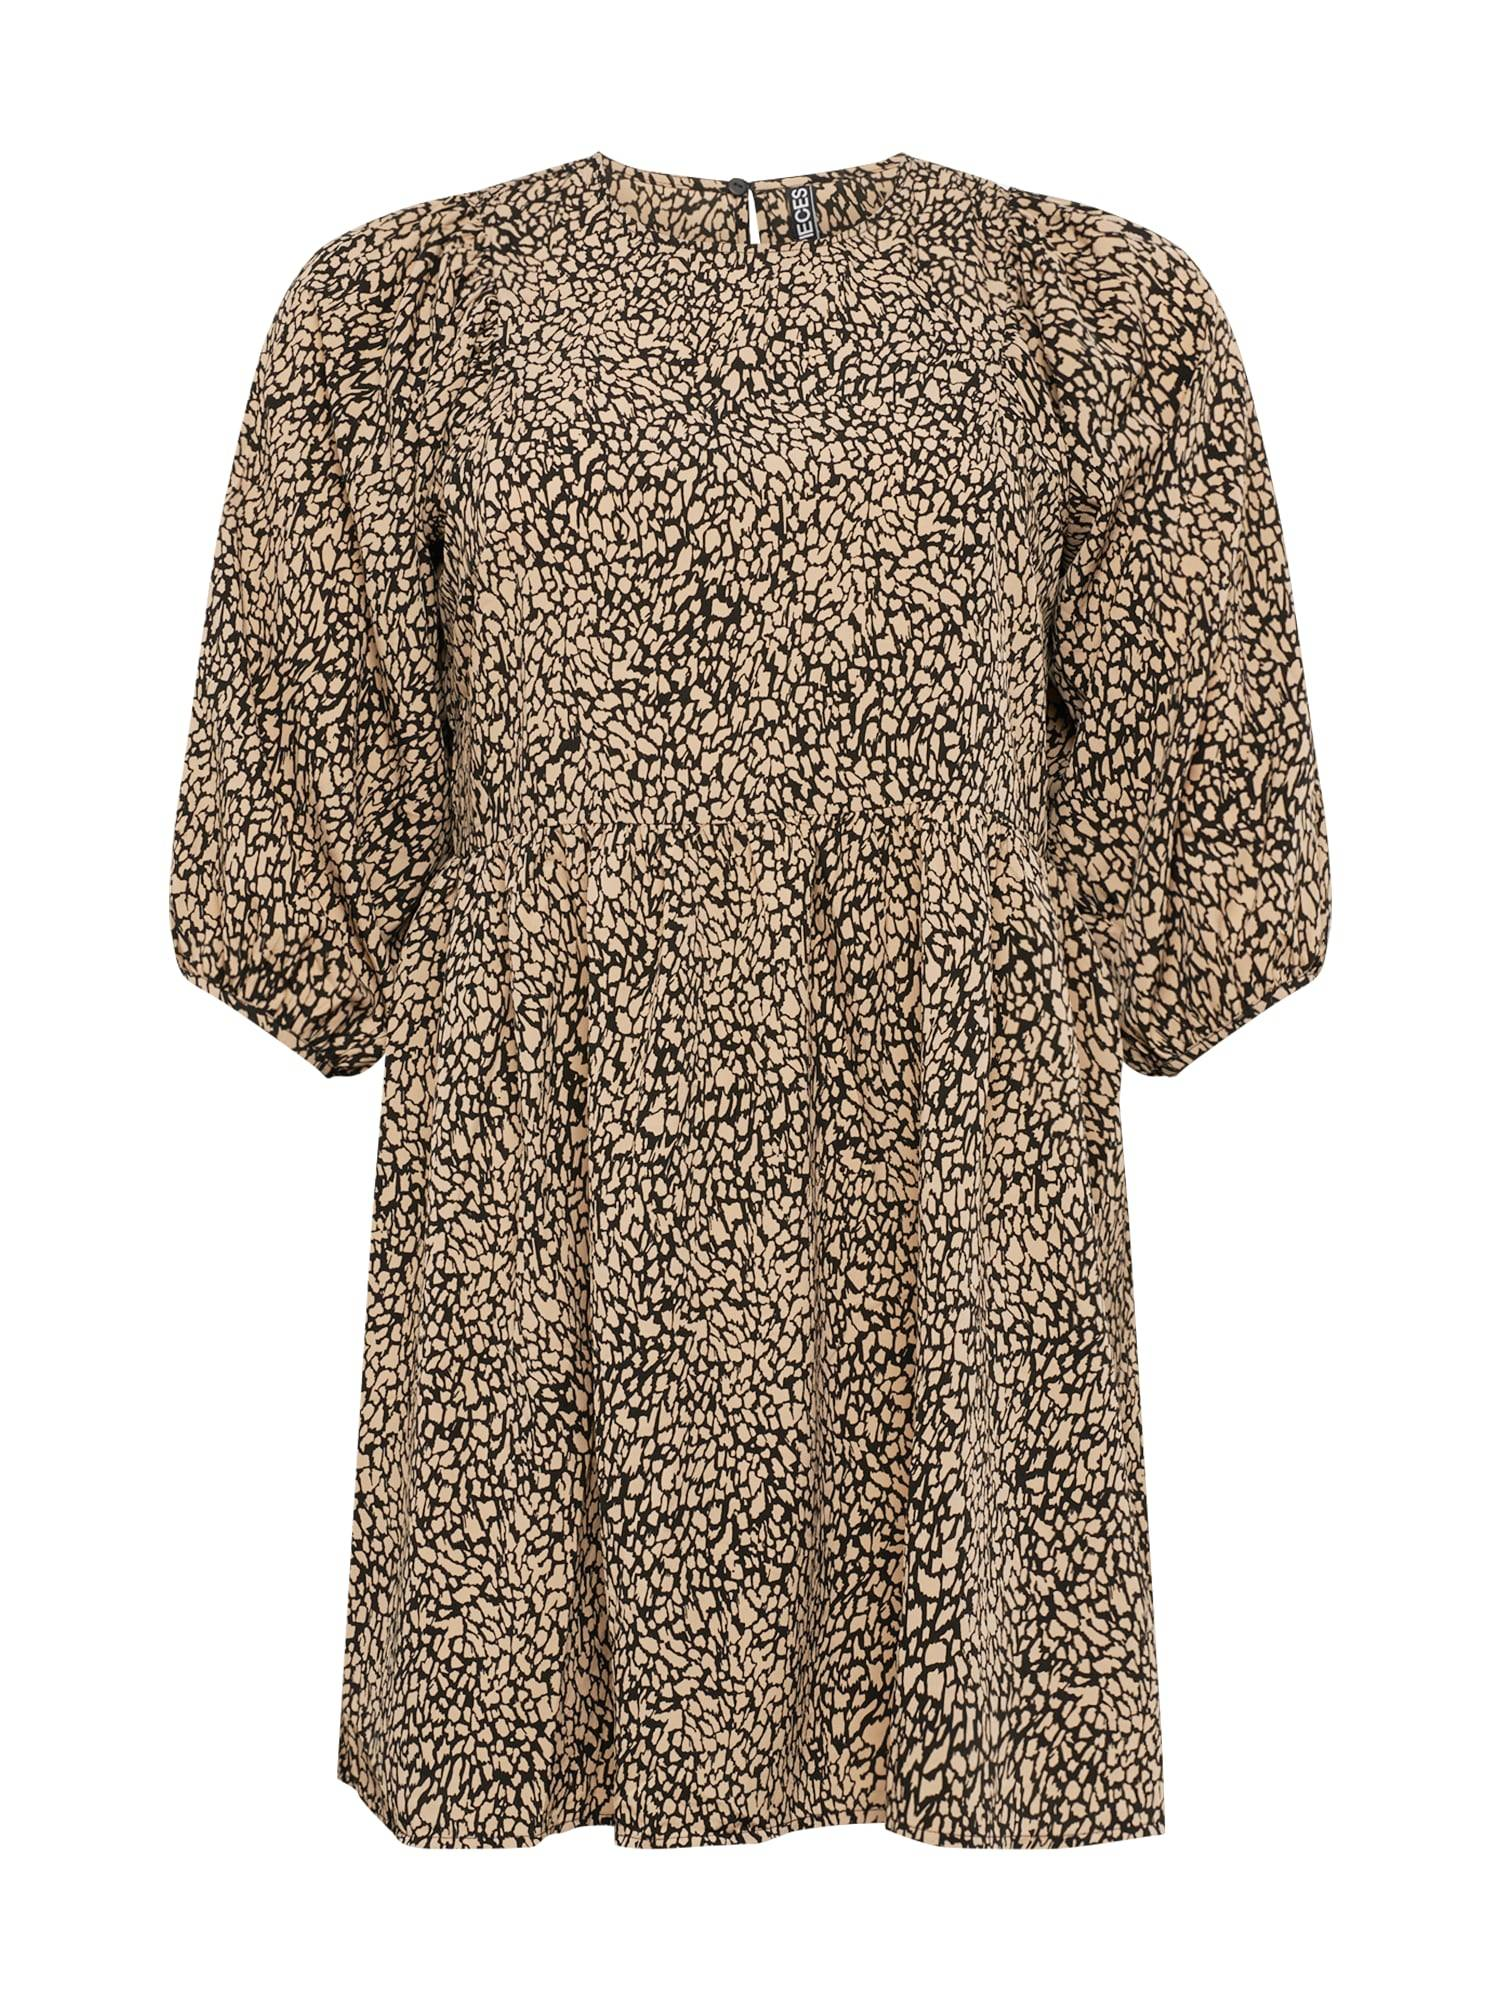 PIECES (Curve) Robe 'GILBERTA'  - Beige - Taille: 50 - female